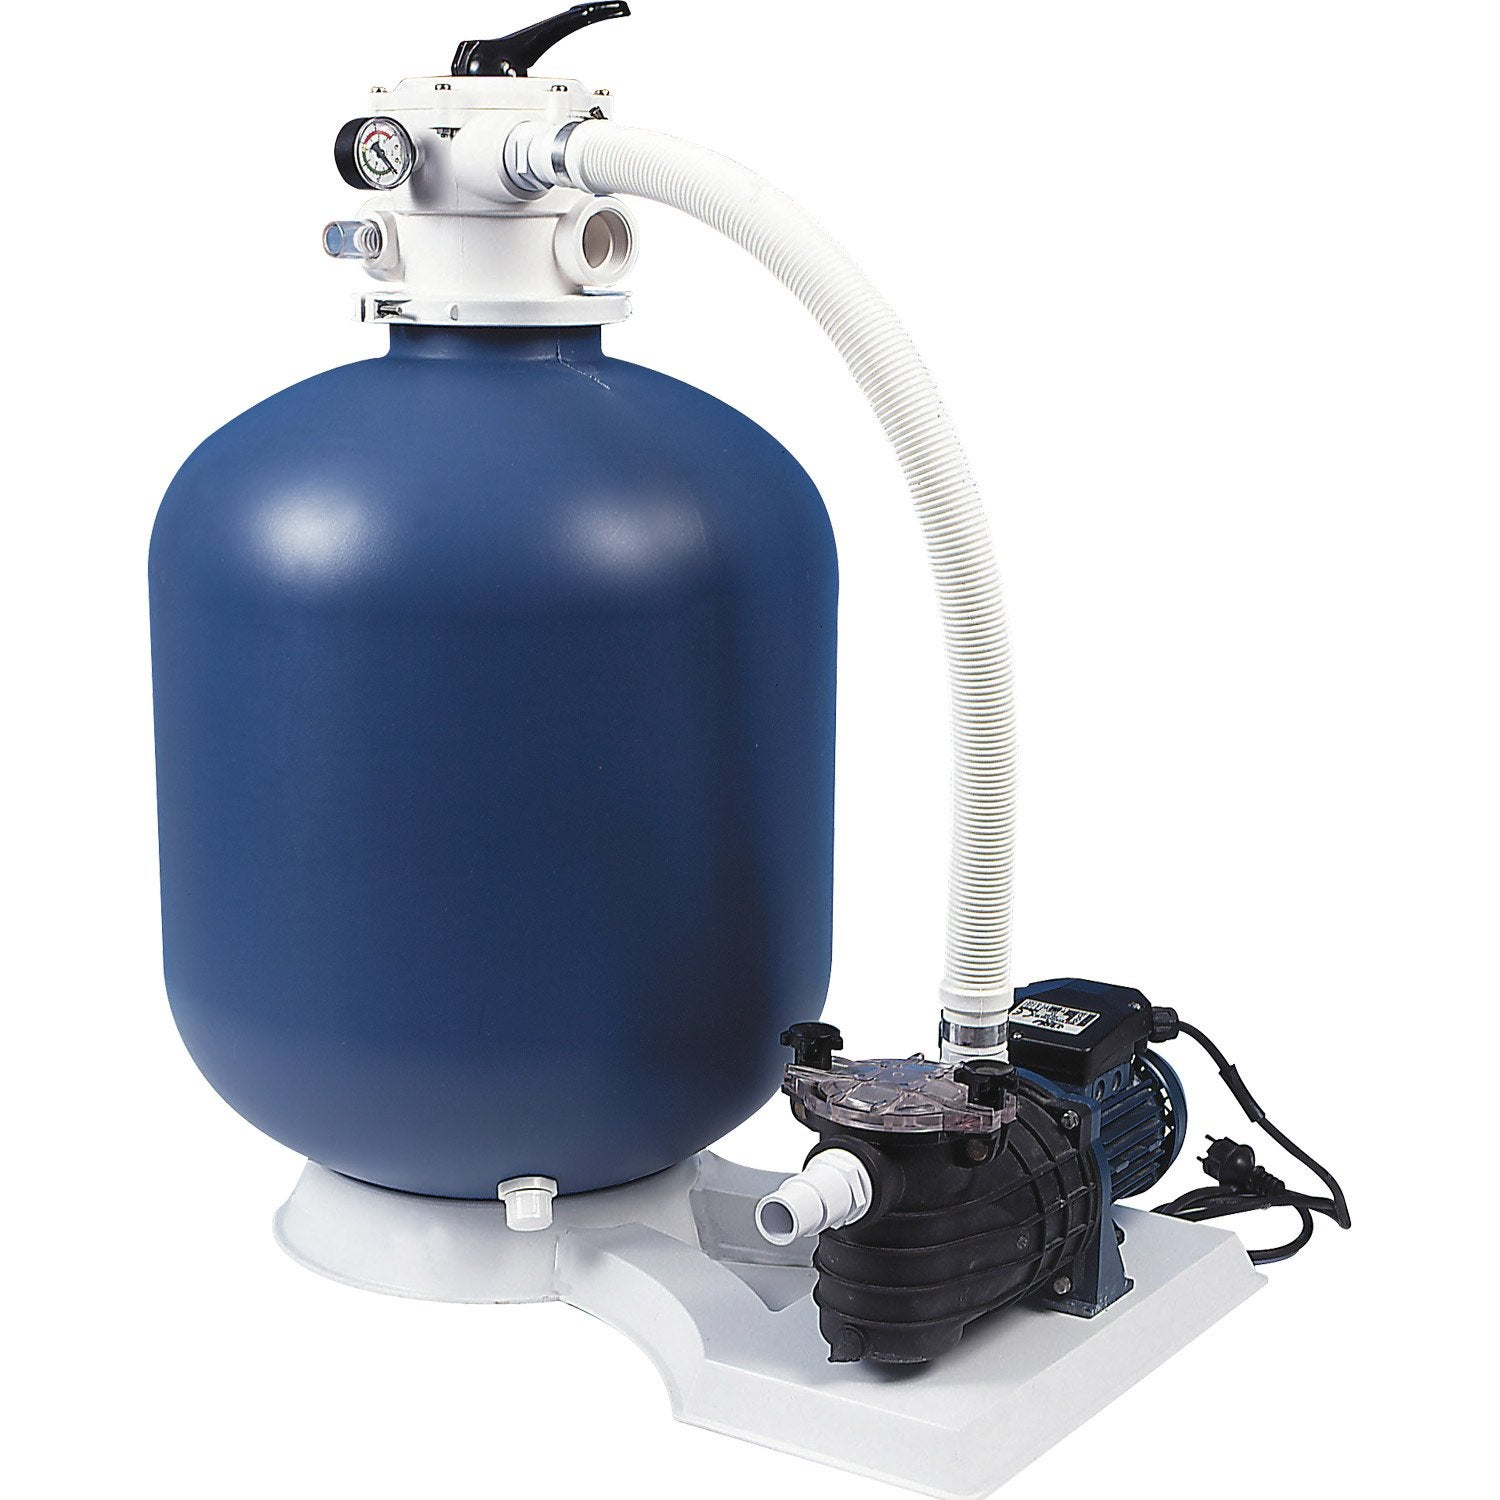 Pompe a sable avec leroy merlin brico depot for Kit filtration piscine